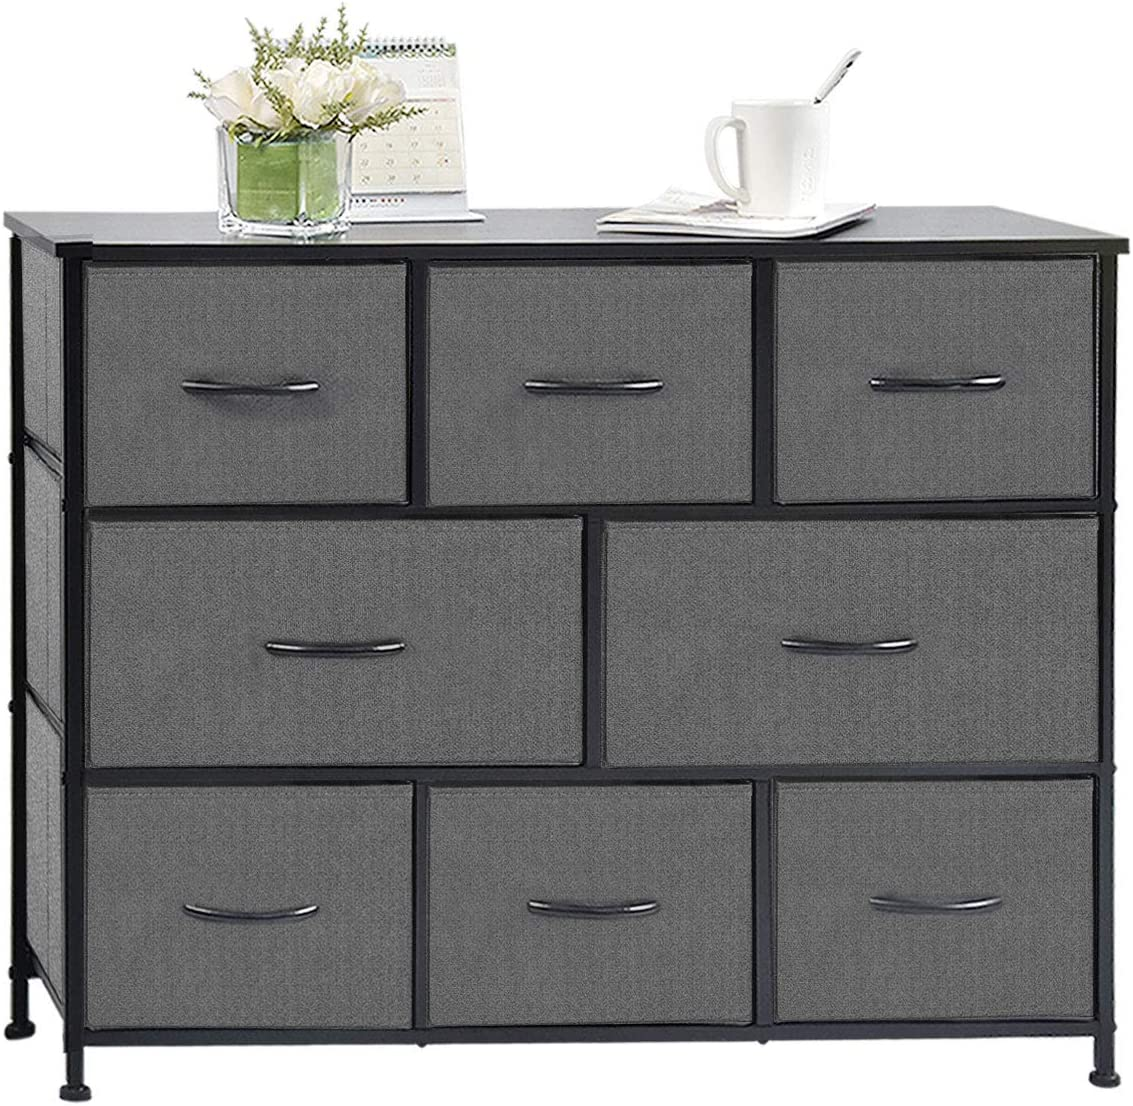 charaHOME Fabric Storage Organizer Clothes Drawer Dresser with 8 Drawers, Dresser Storage Tower for Bedroom, Hallway, Entryway, Closets, Heavy Duty Steel Construction, Wood Top